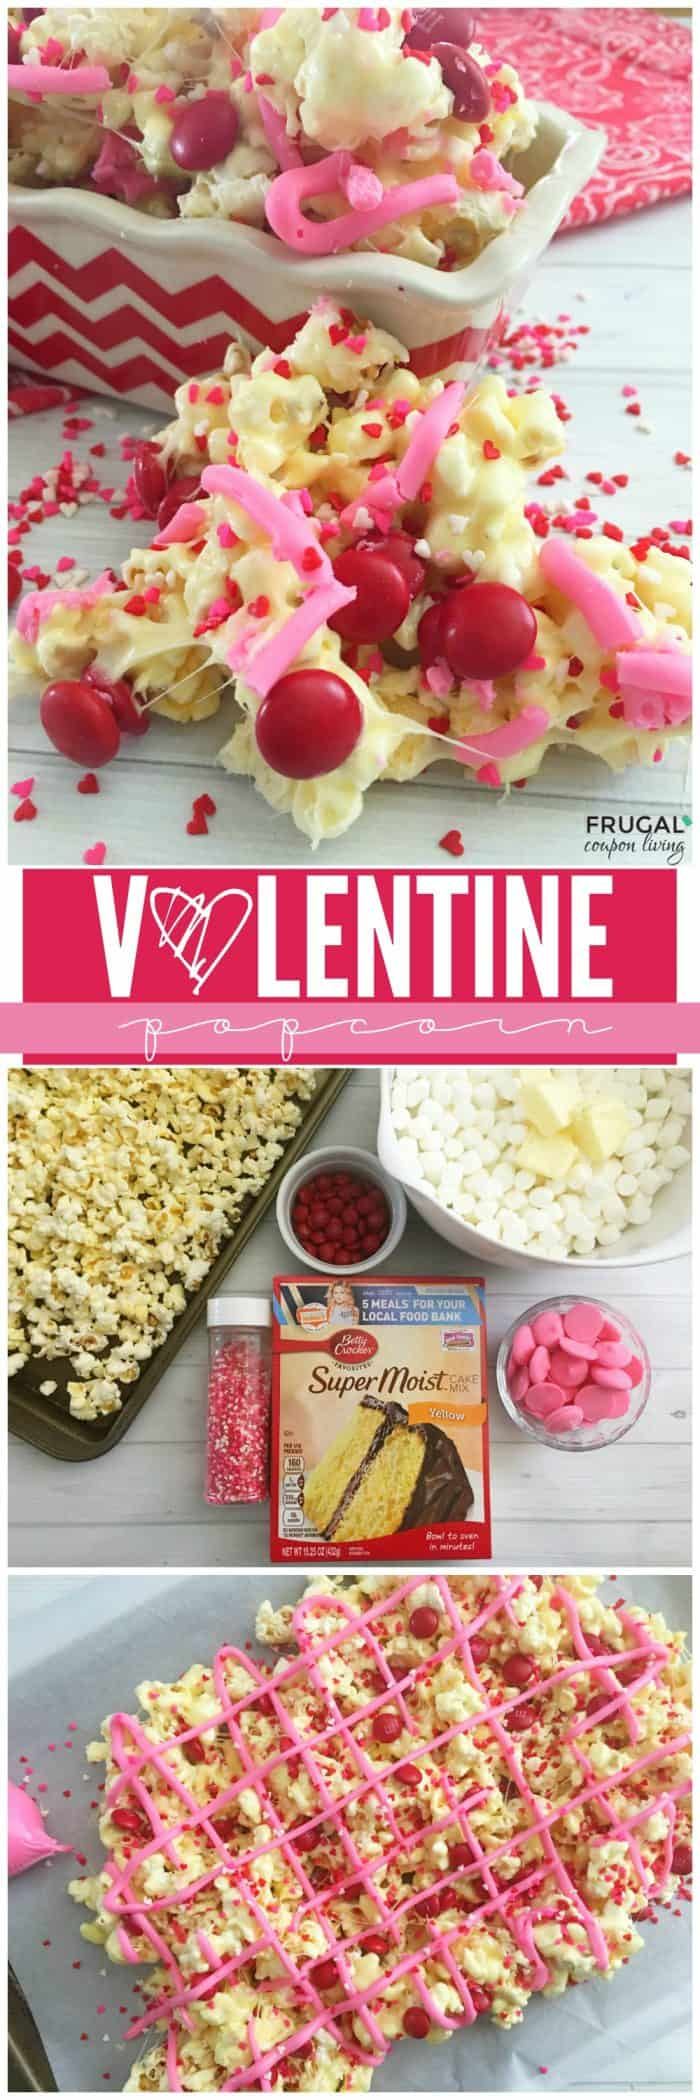 valentine-popcorn-frugal-coupon-living-long